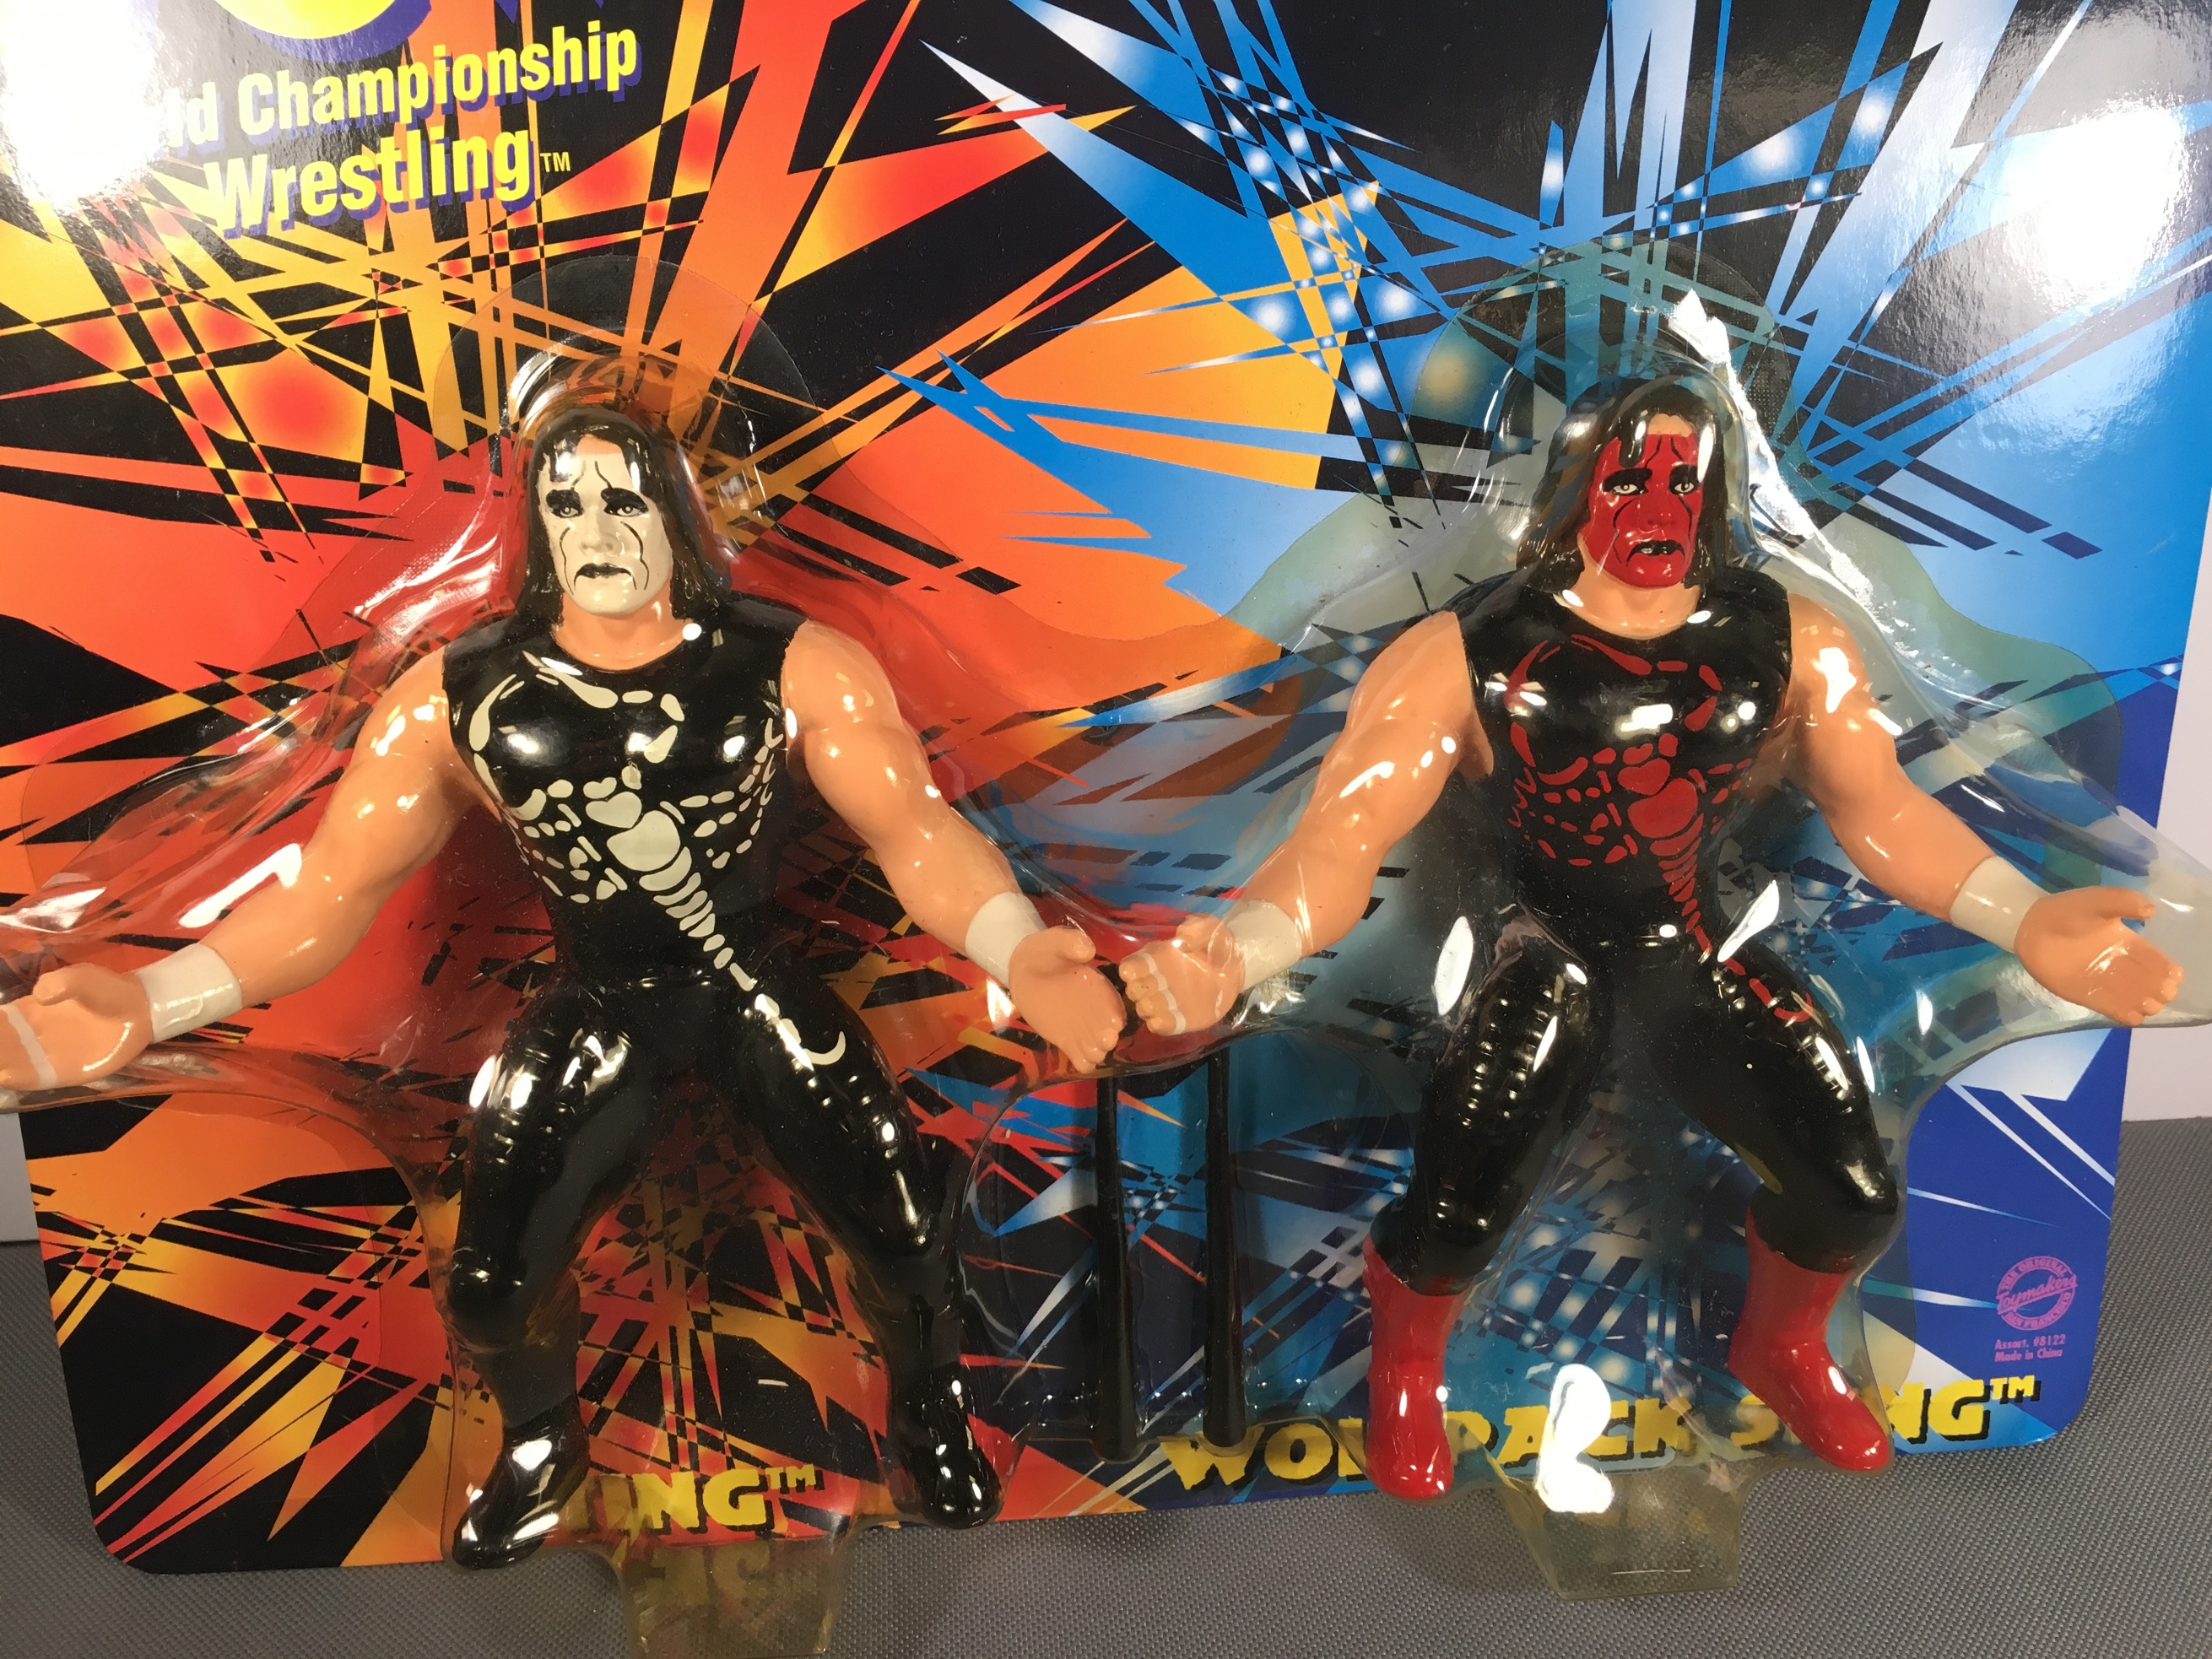 Sting vs Sting (White and Red Facepaint) (Posed 1997 Figures)